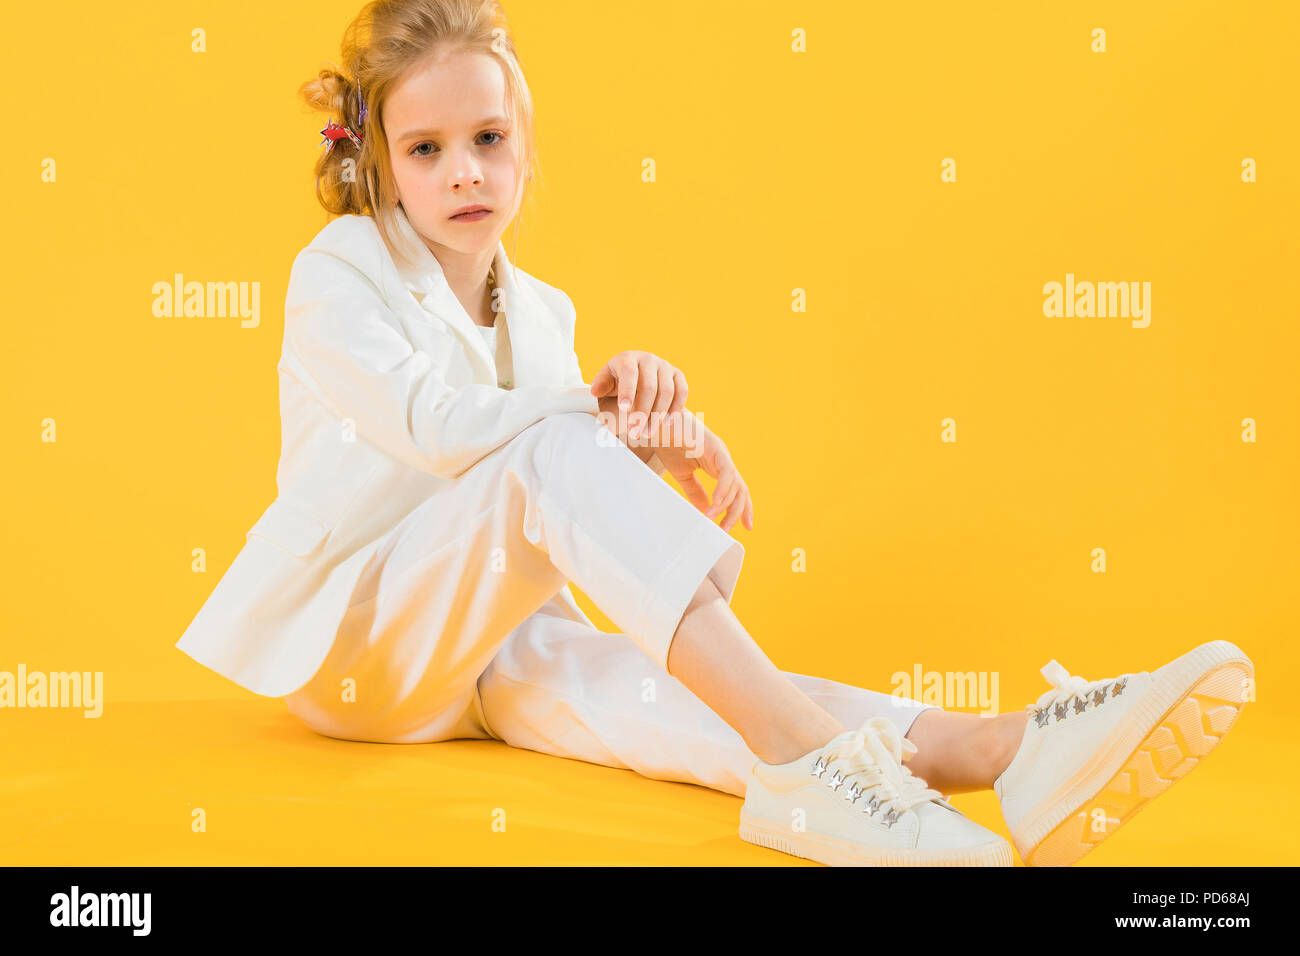 A teenage girl in white clothes sits stretching her legs forward on a yellow background. Stock Photo